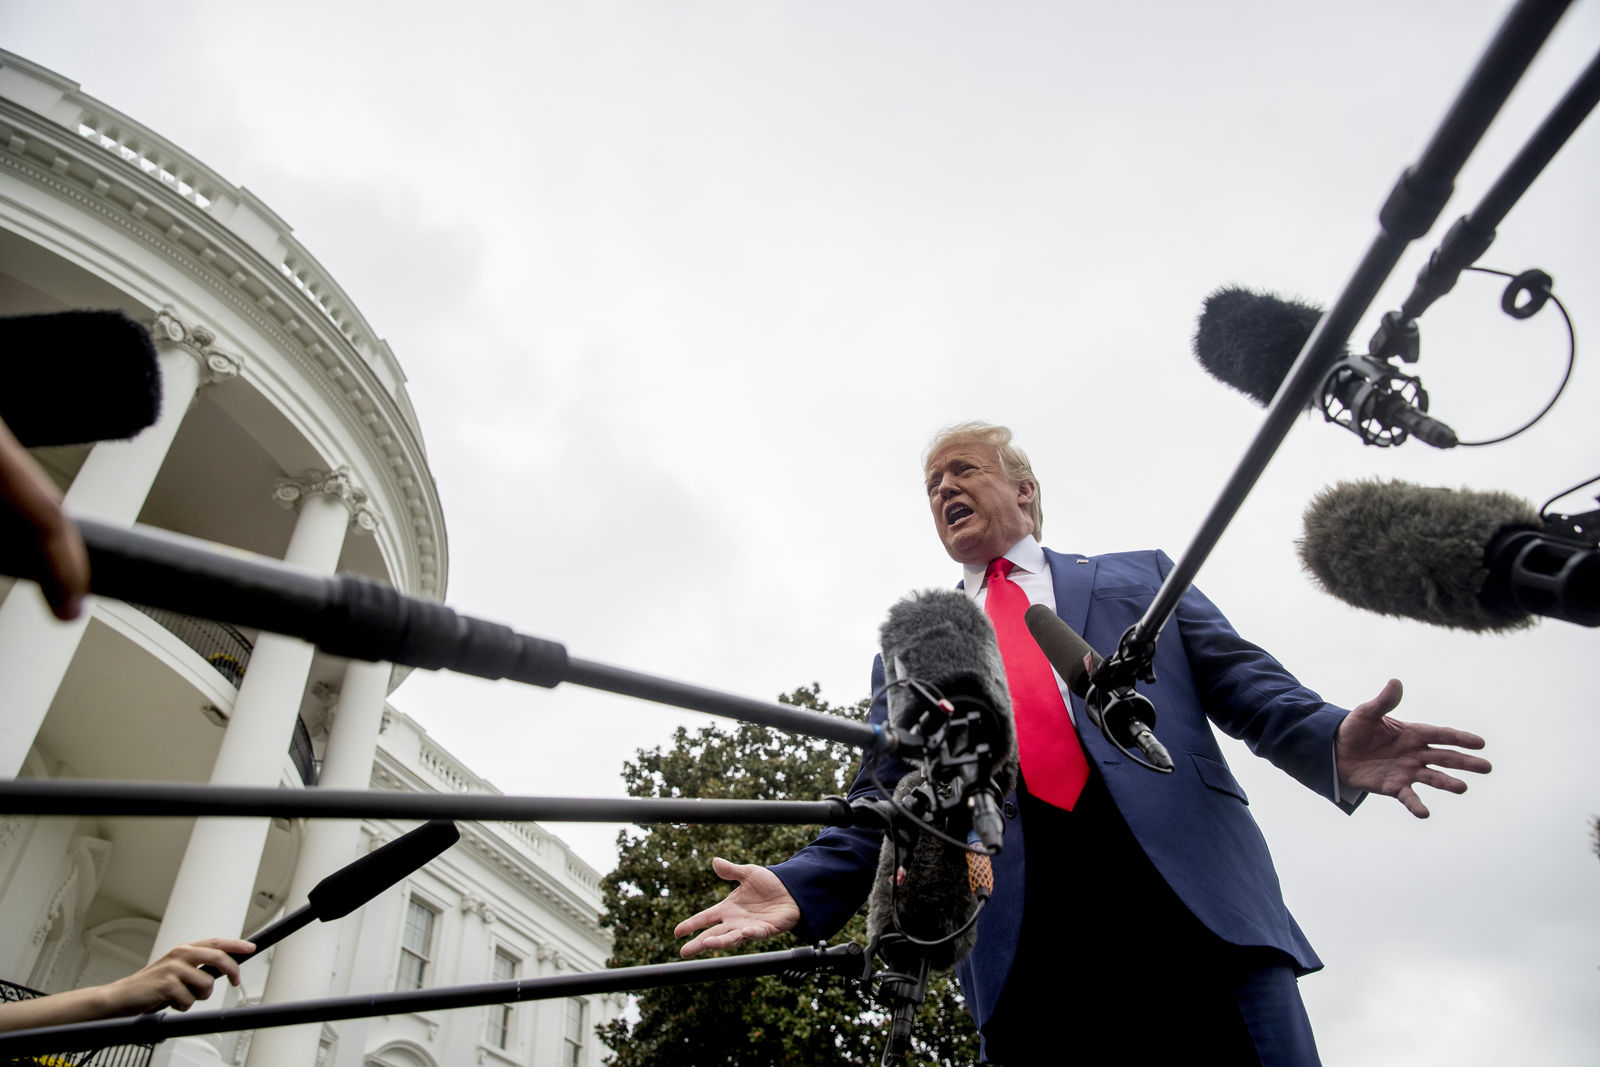 President Donald Trump speaks to the media on the South Lawn of the White House in Washington, Thursday, Oct. 3, 2019, before boarding Marine One for a short trip to Andrews Air Force Base, Md., and then on to Florida. (AP Photo/Andrew Harnik)